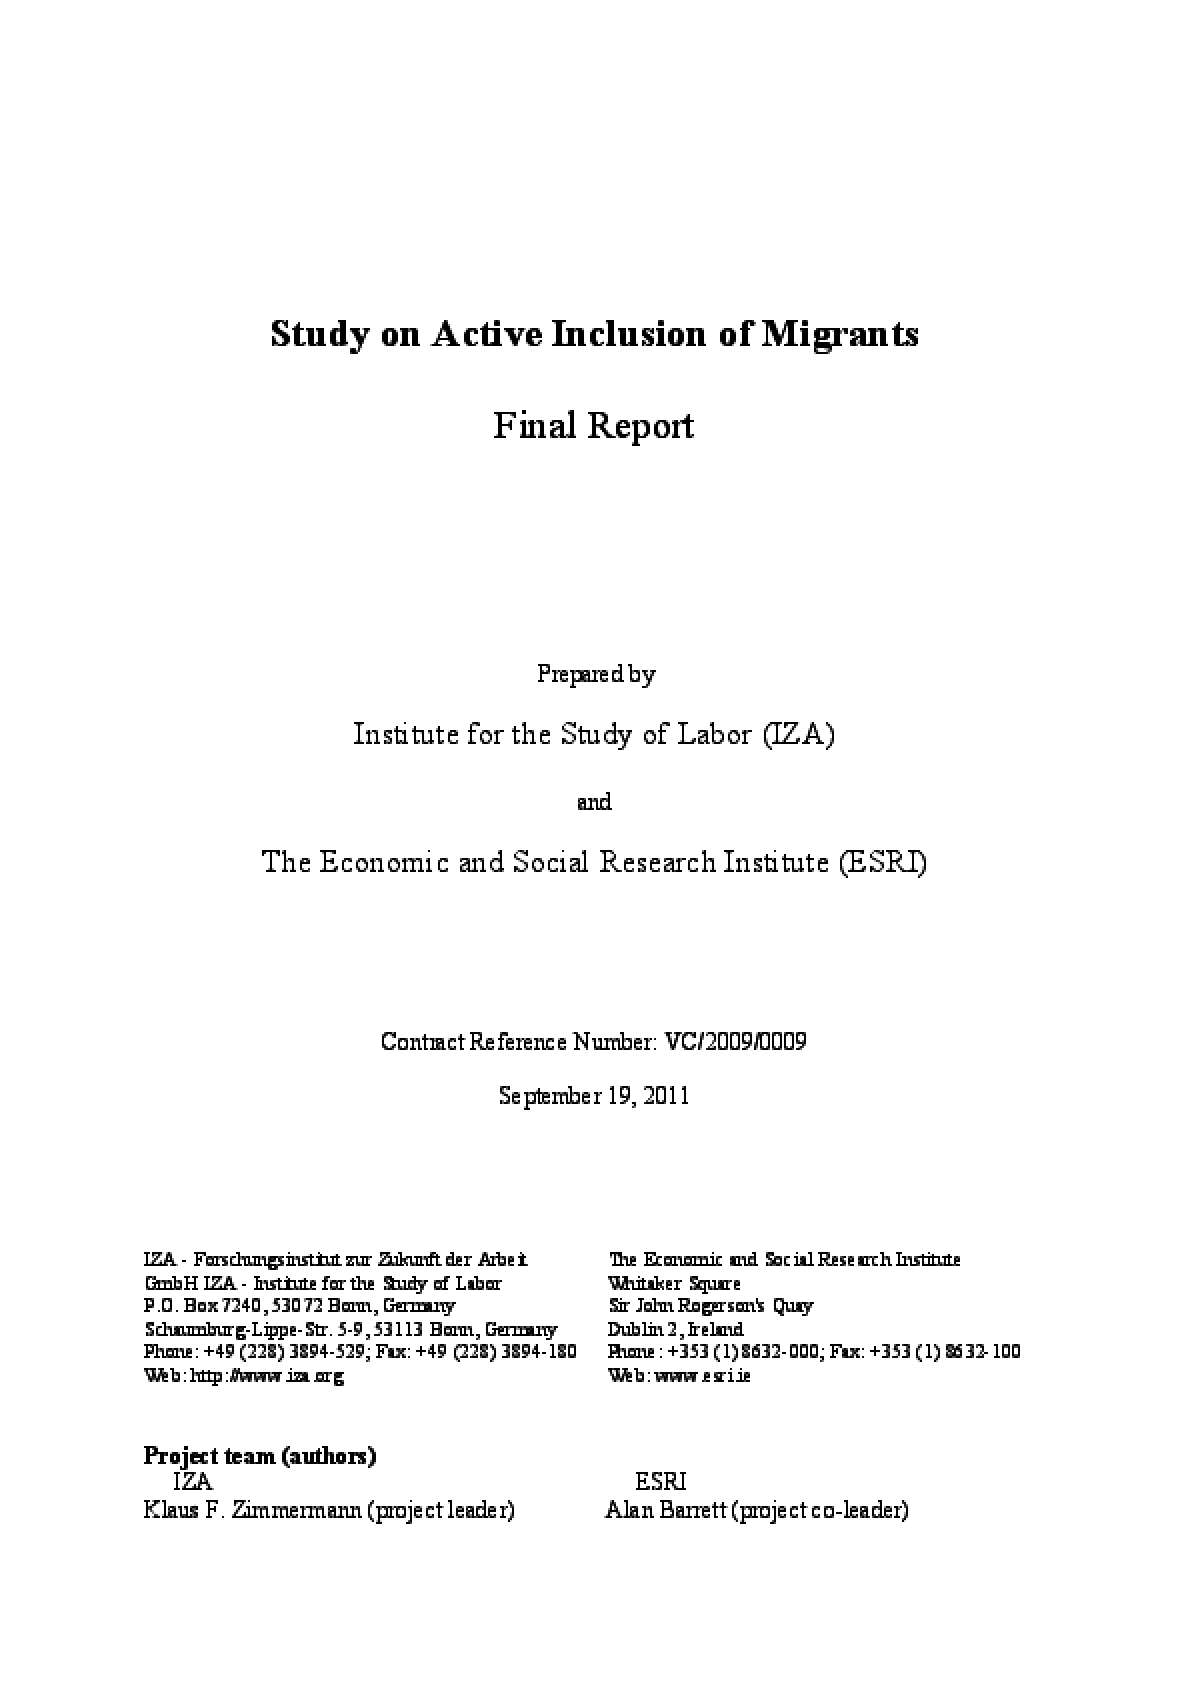 Study on Active Inclusion of Migrants